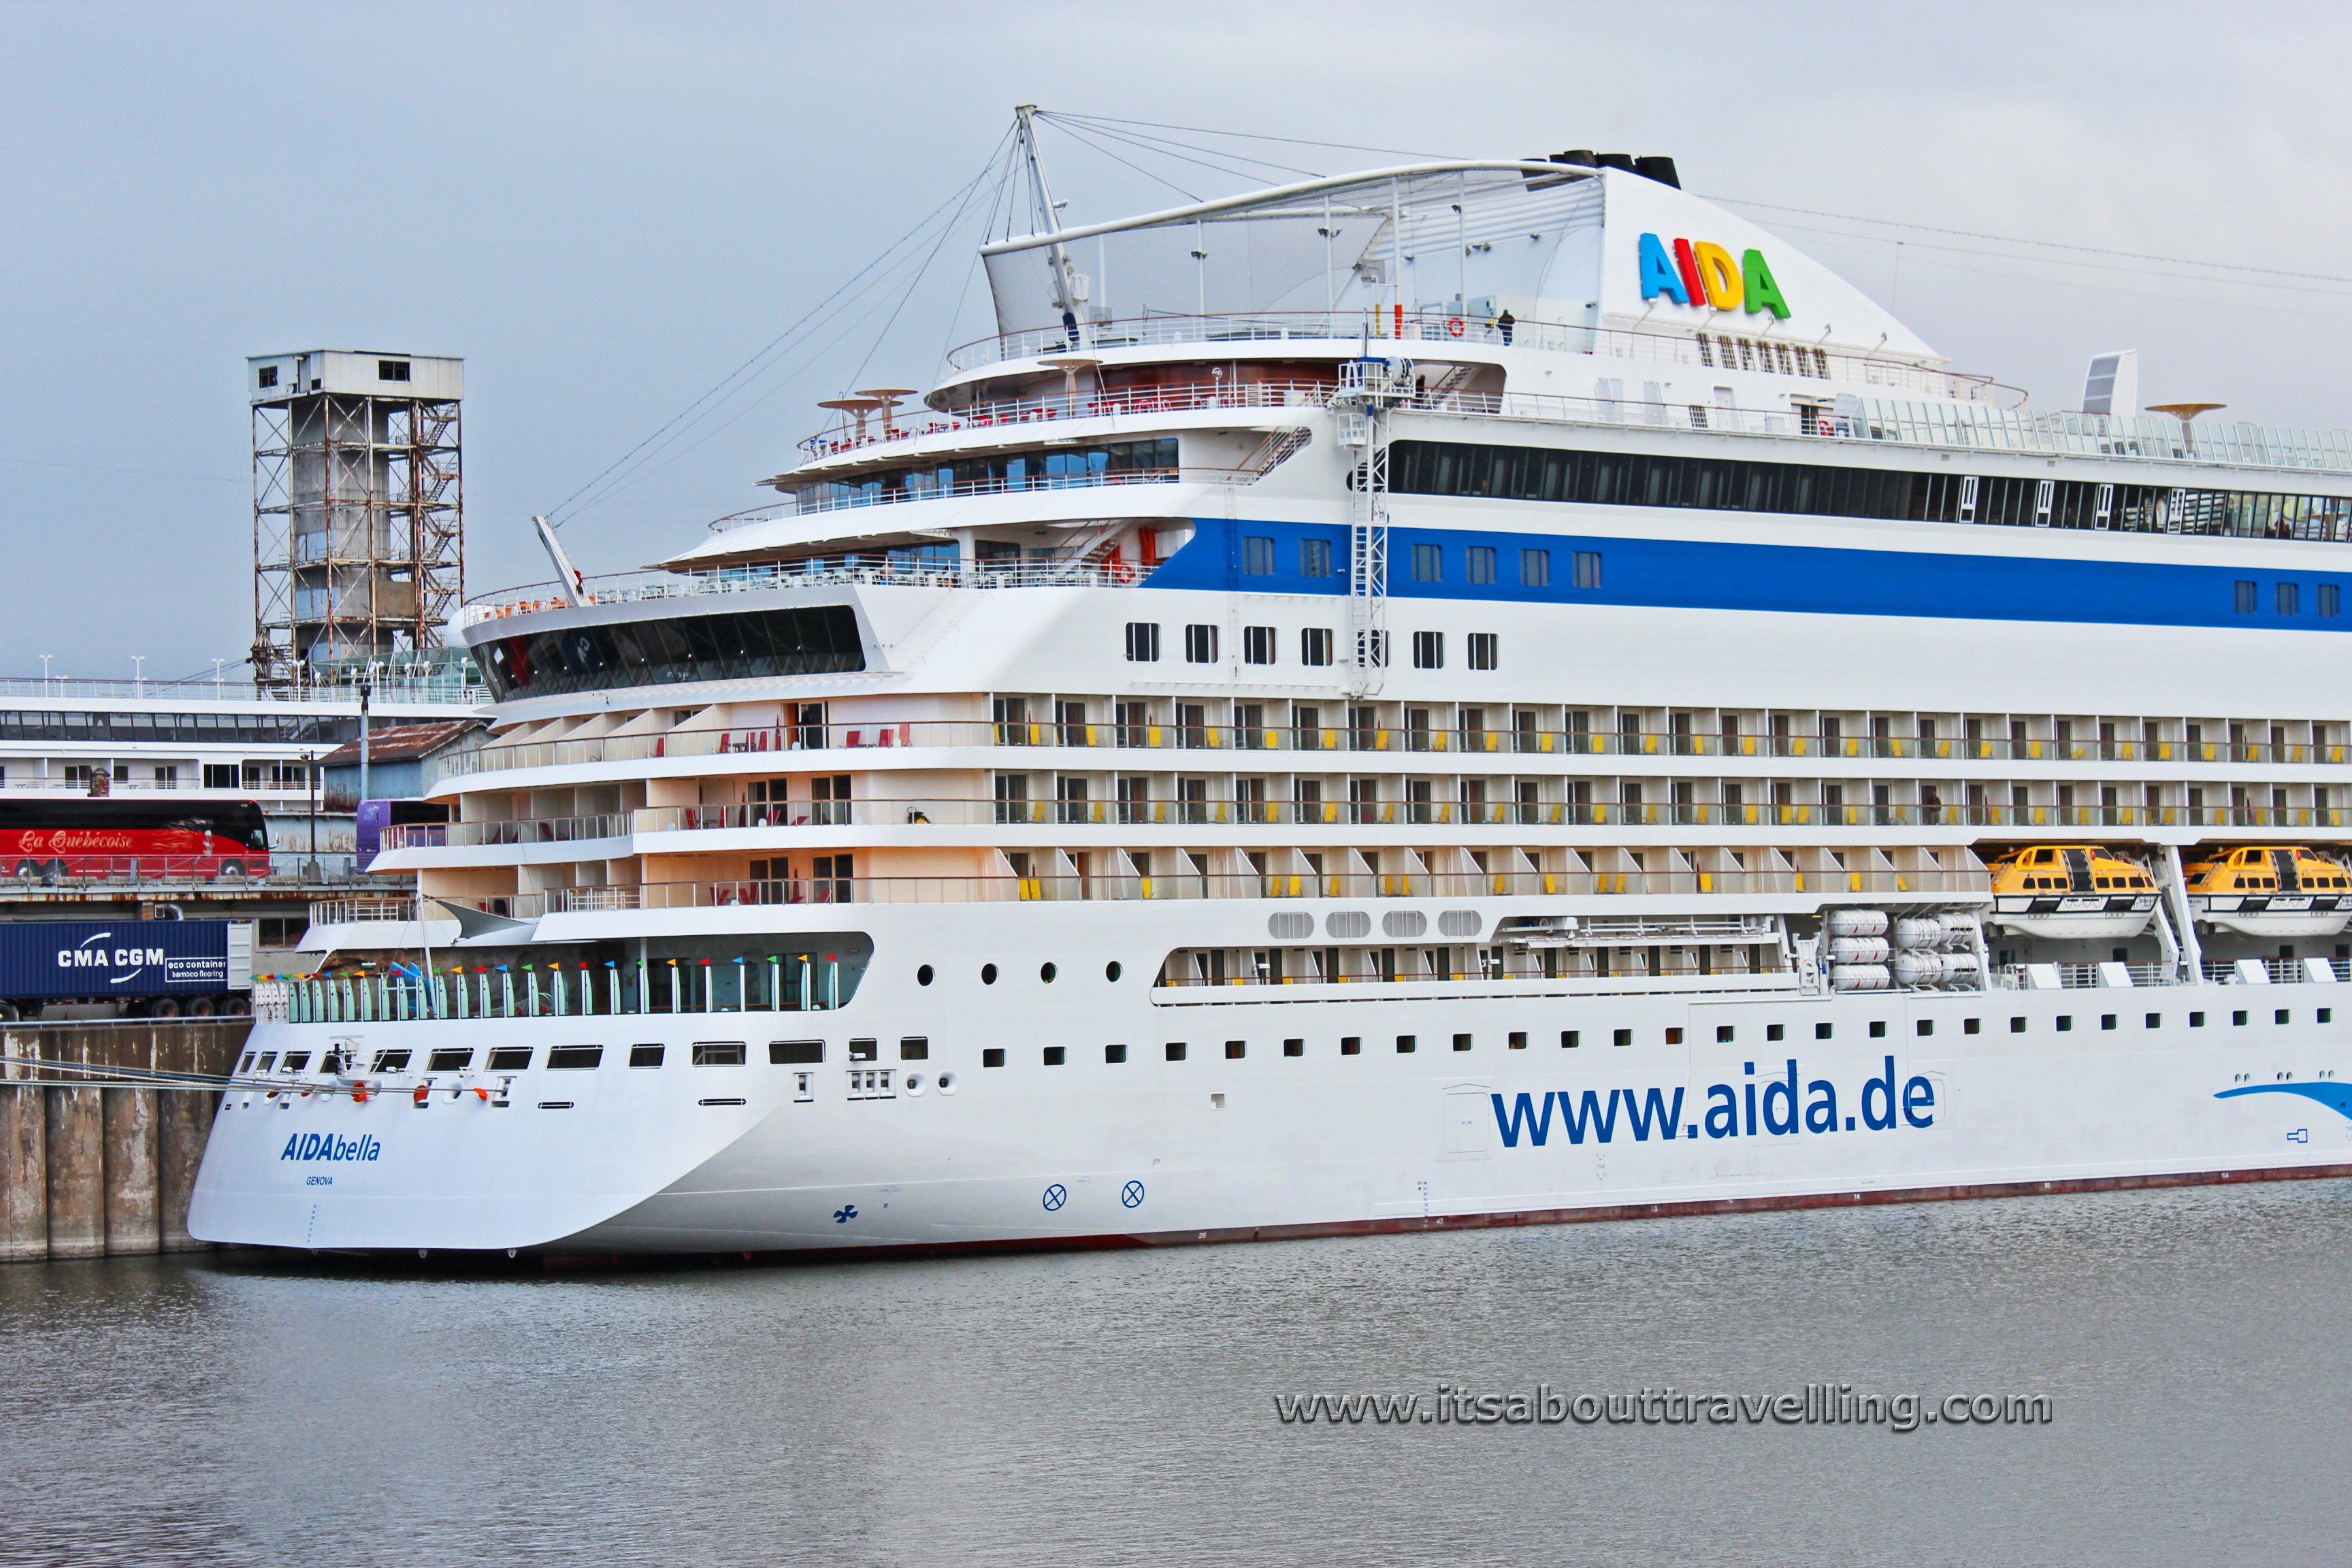 The AIDAbella At The Montreal Cruise Port Its About Travelling - Aida de cruise ship